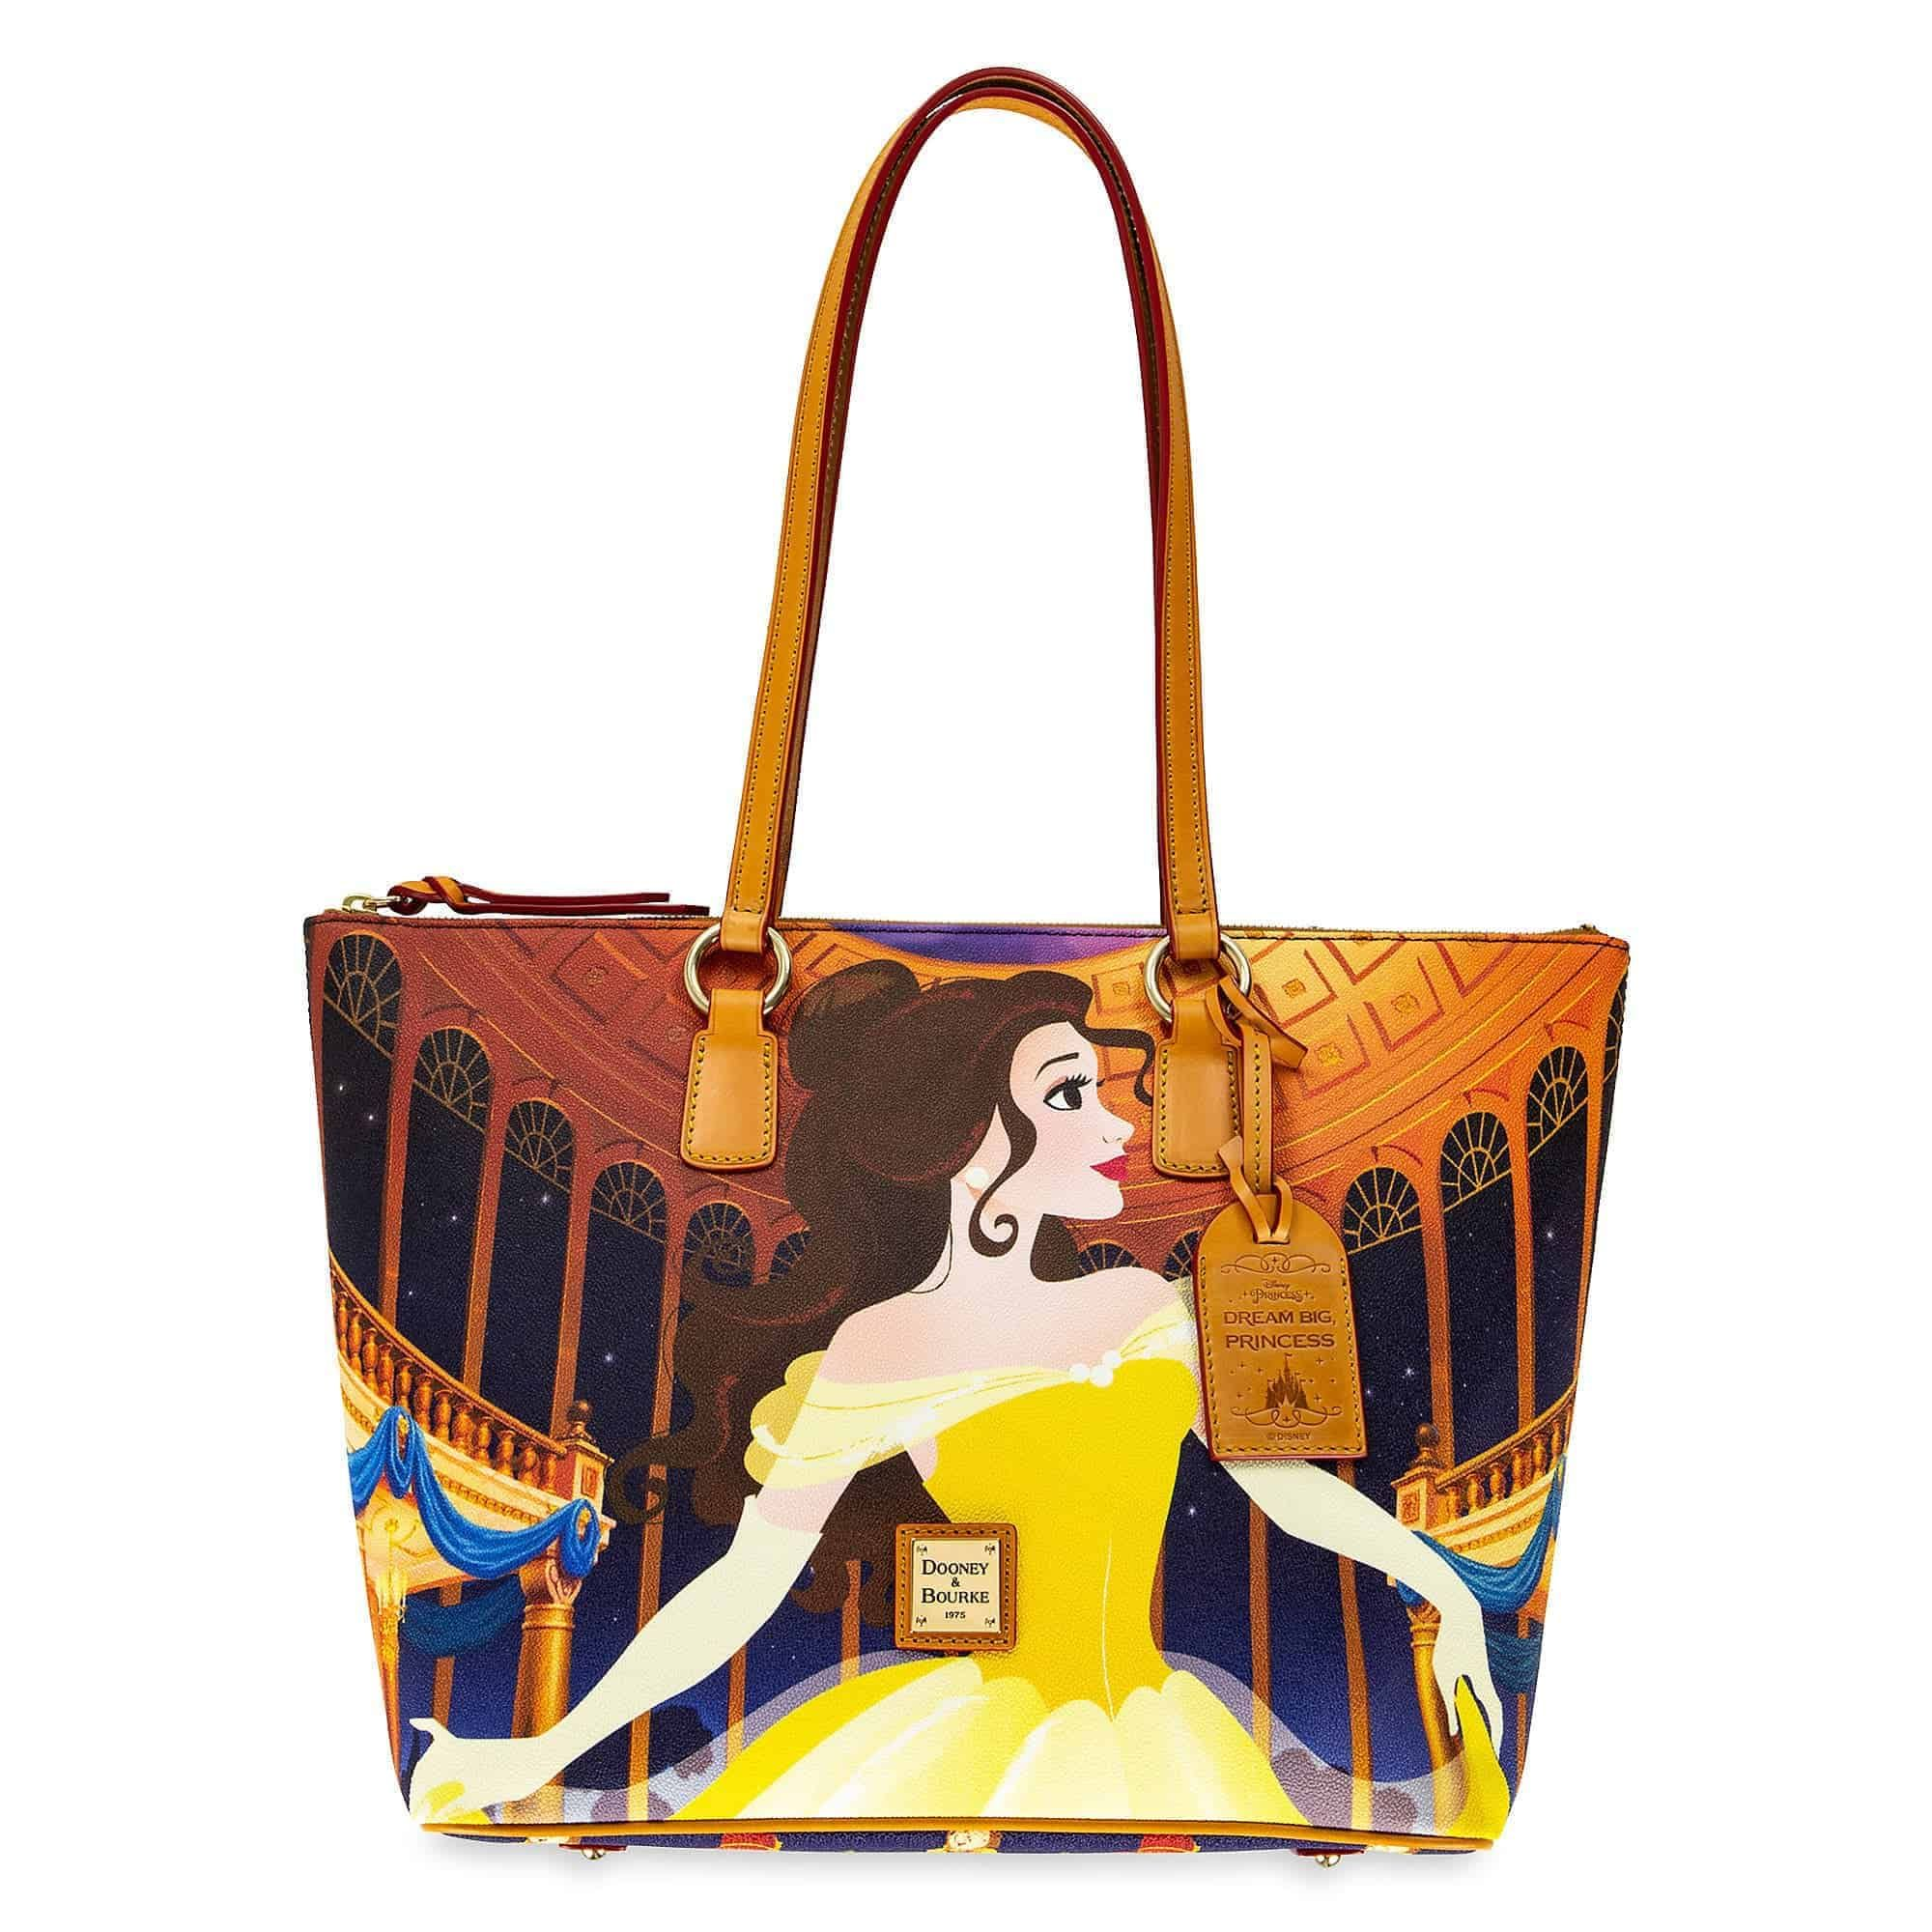 Beauty And The Beast 2019 Collection By Disney Dooney Bourke Disney Dooney And Bourke Guide In 2021 Dooney And Bourke Disney Disney Dooney Dooney Bourke